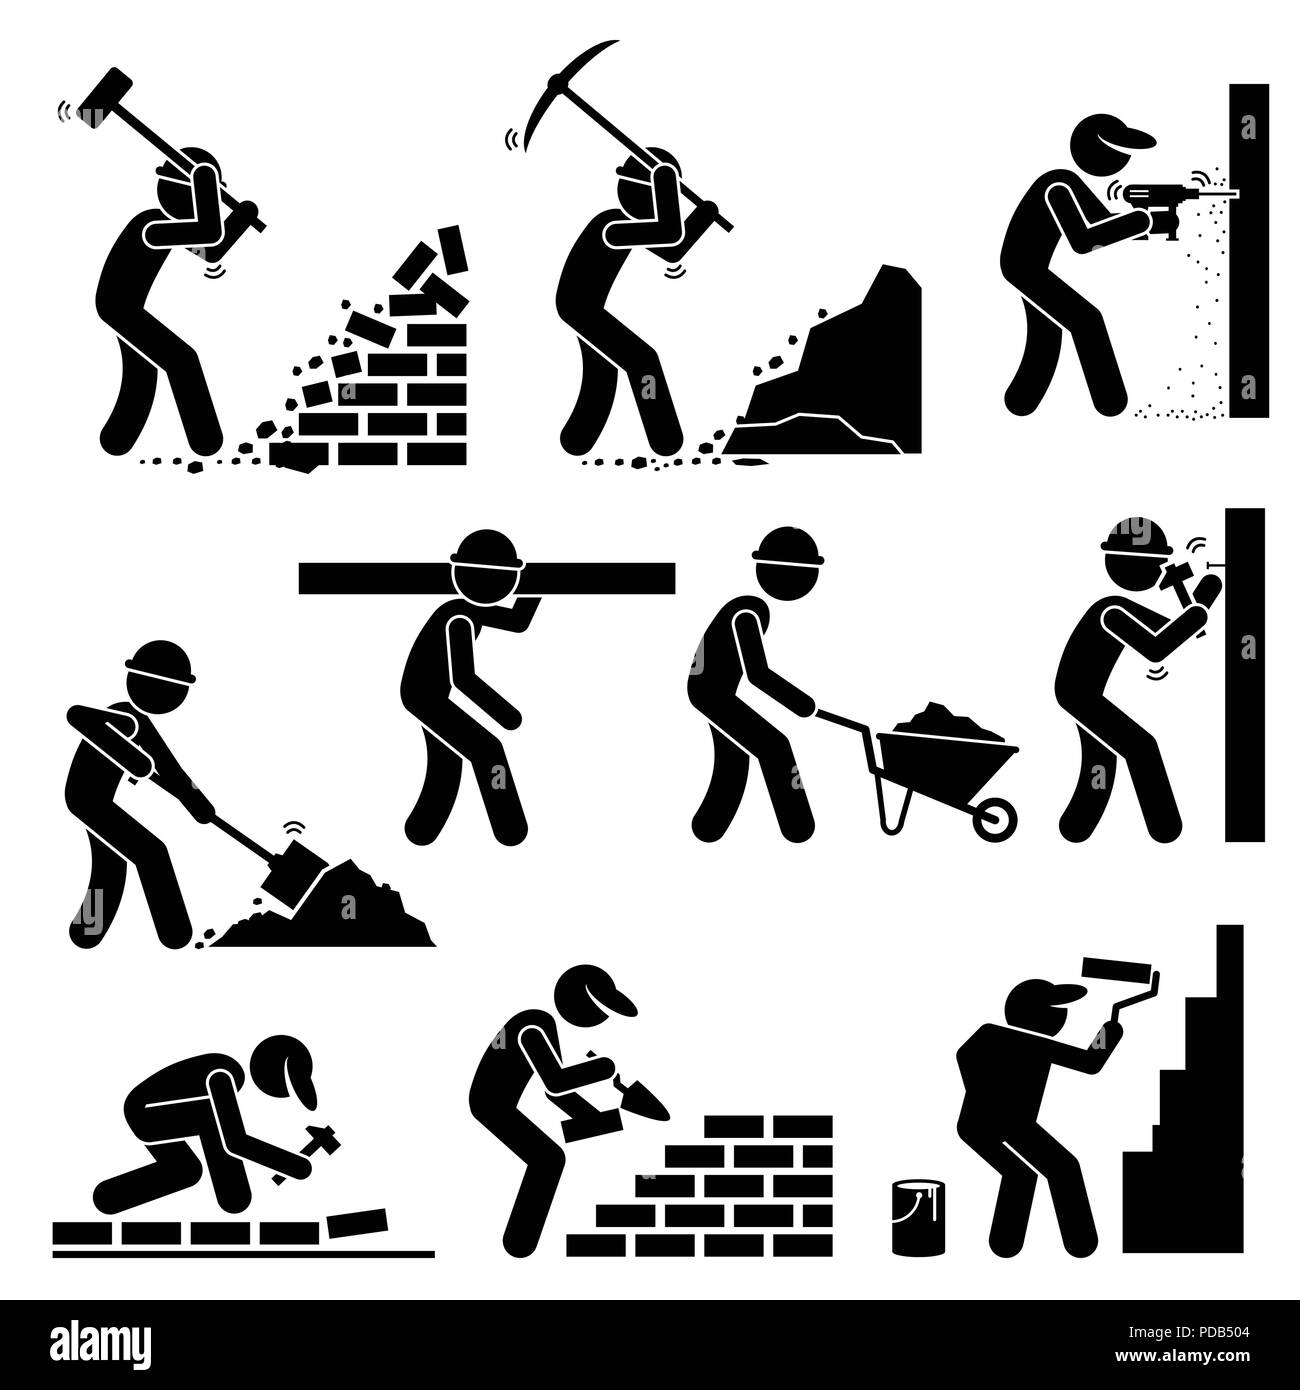 Builders Constructors Workers Building Houses With Tools And Equipment At Construction Site Stock Vector Image Art Alamy